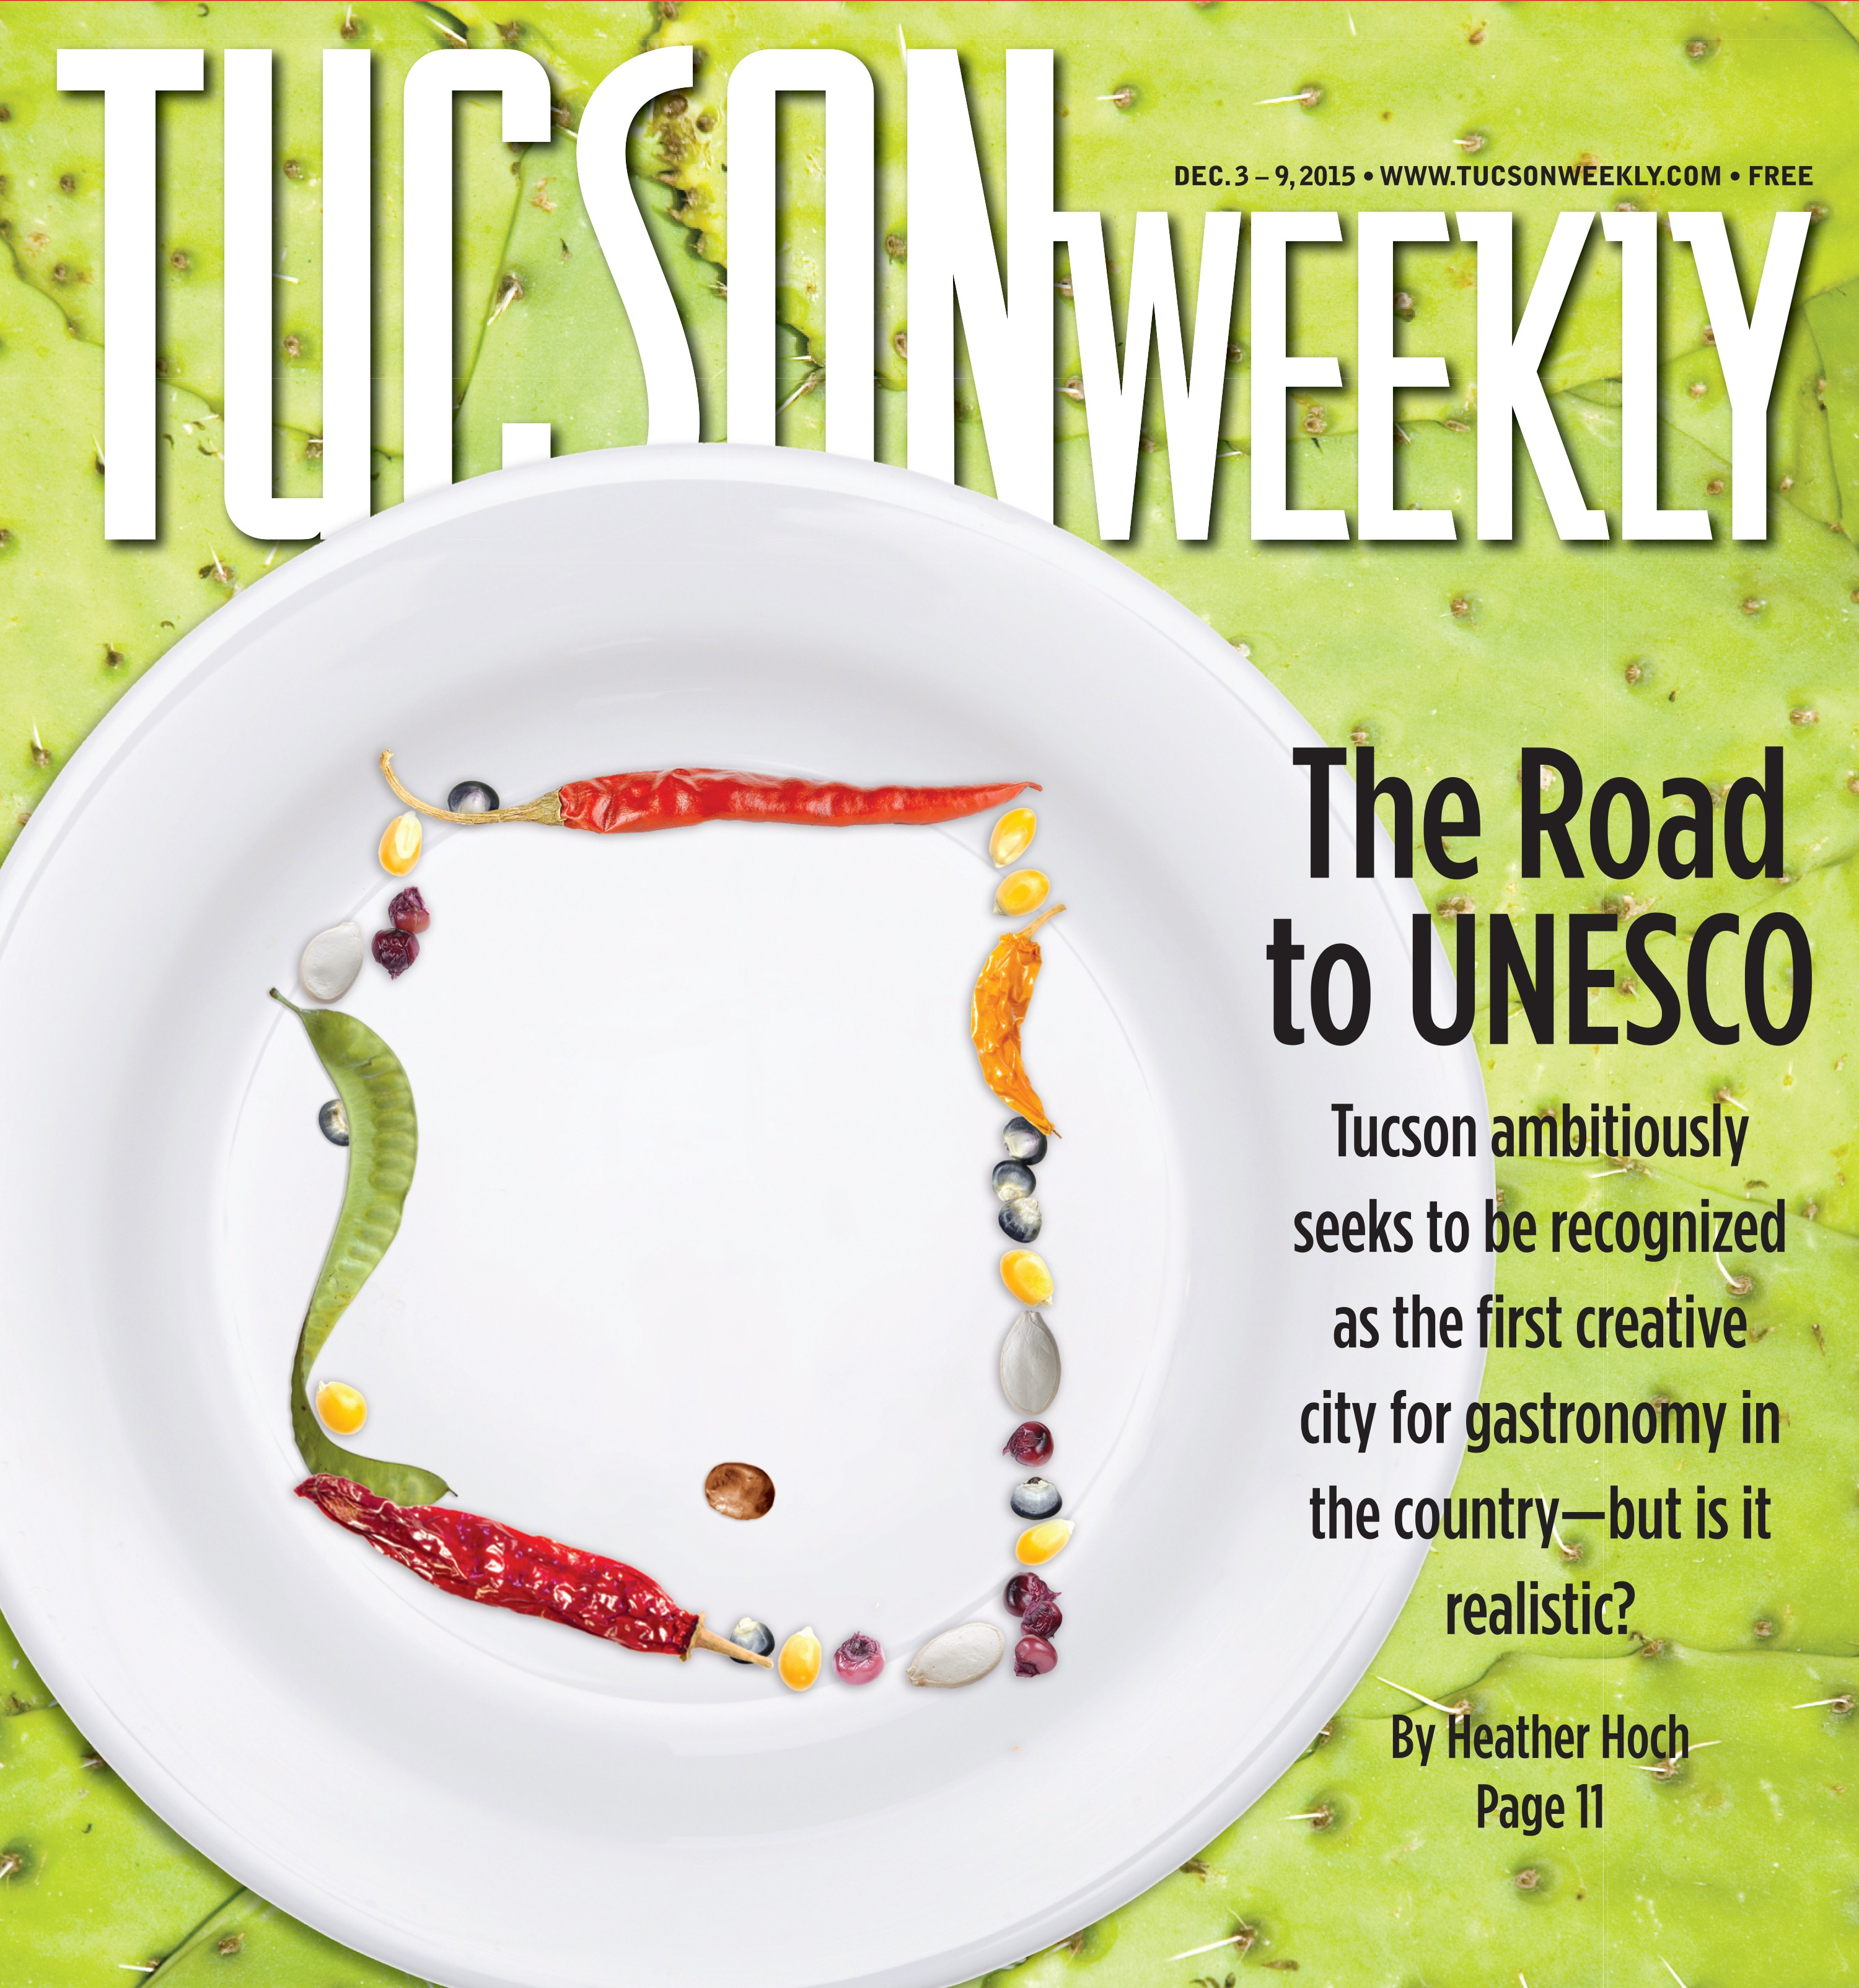 The road to unesco chow feature tucson weekly tucson ambitiously seeks to be recognized as the first creative city for gastronomy in the countrybut is it realistic solutioingenieria Gallery